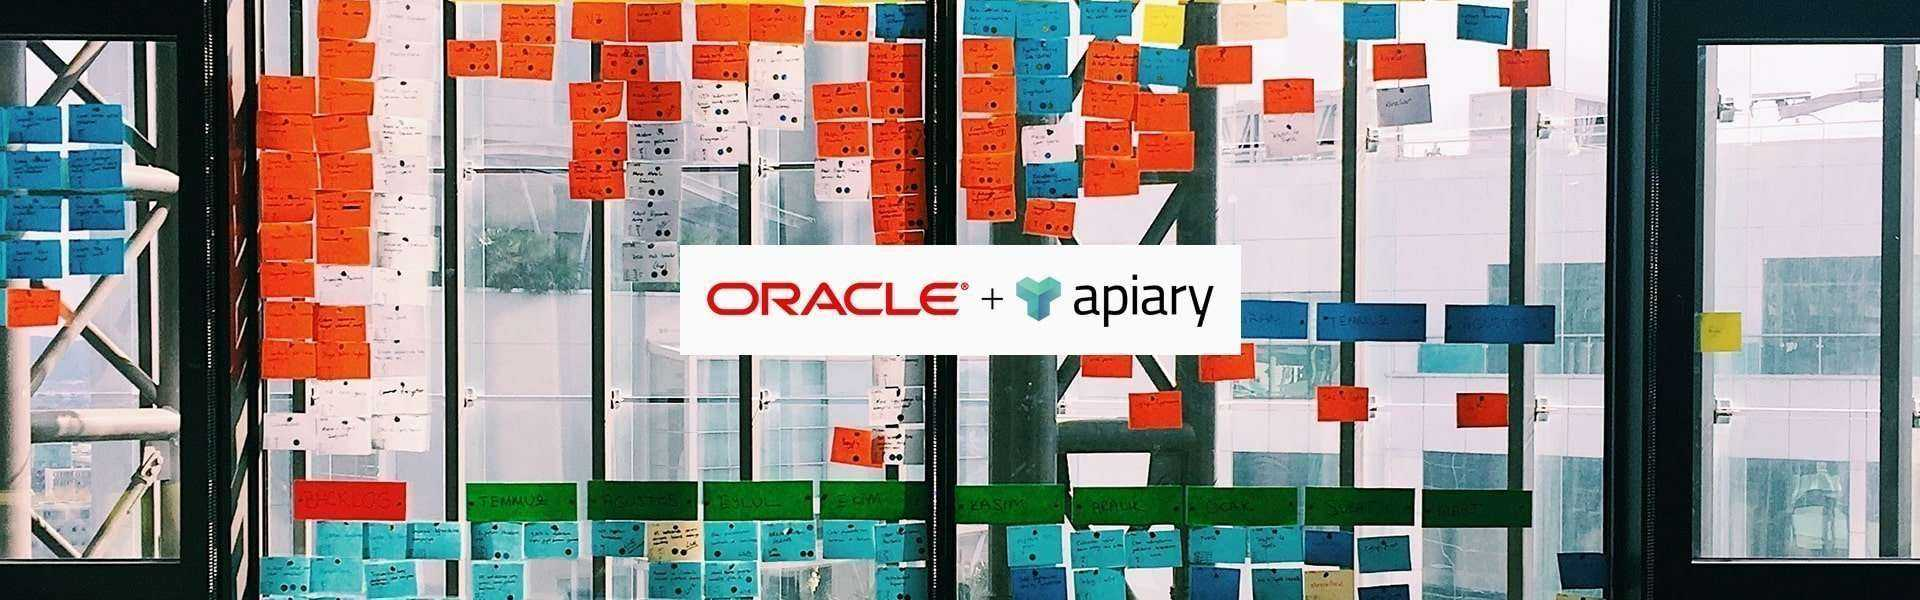 Oracle Apiary